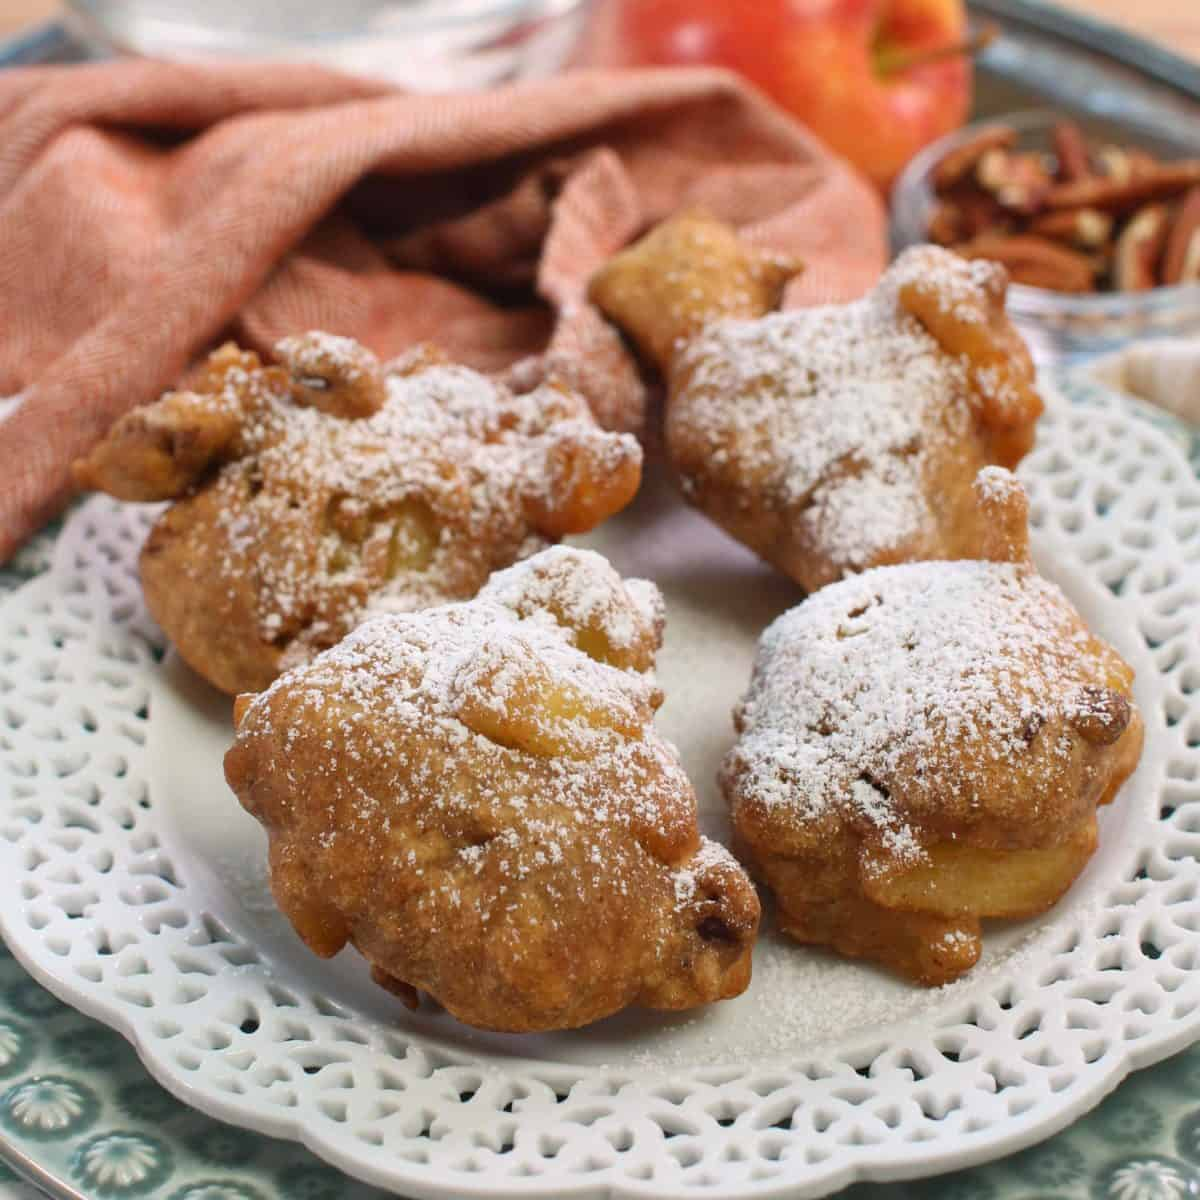 a close up of four apple fritters on a silver tray.